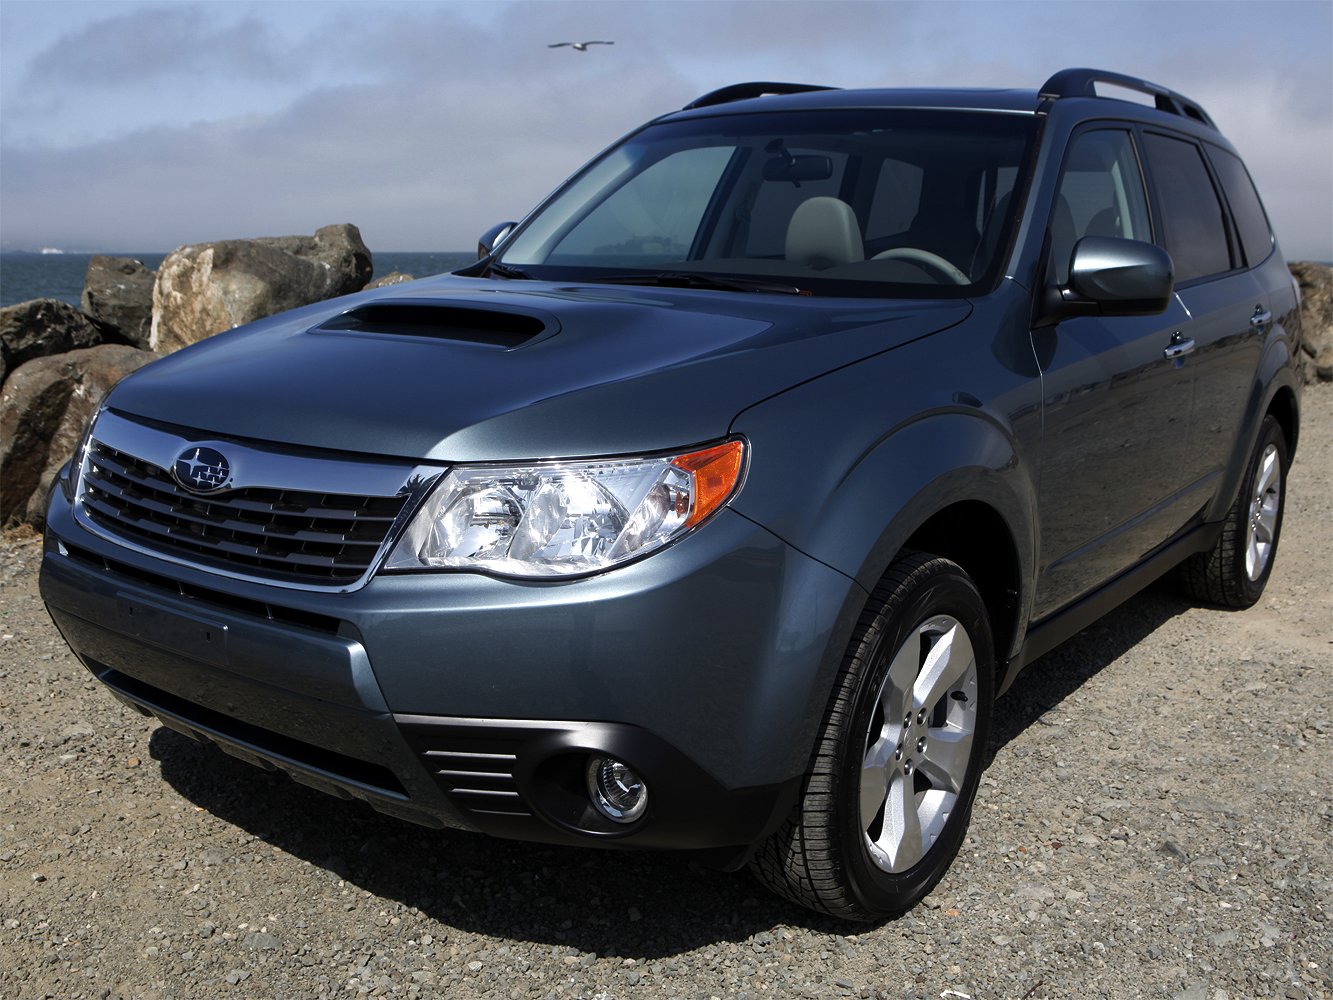 subaru forester 2.5 xt limited-pic. 2